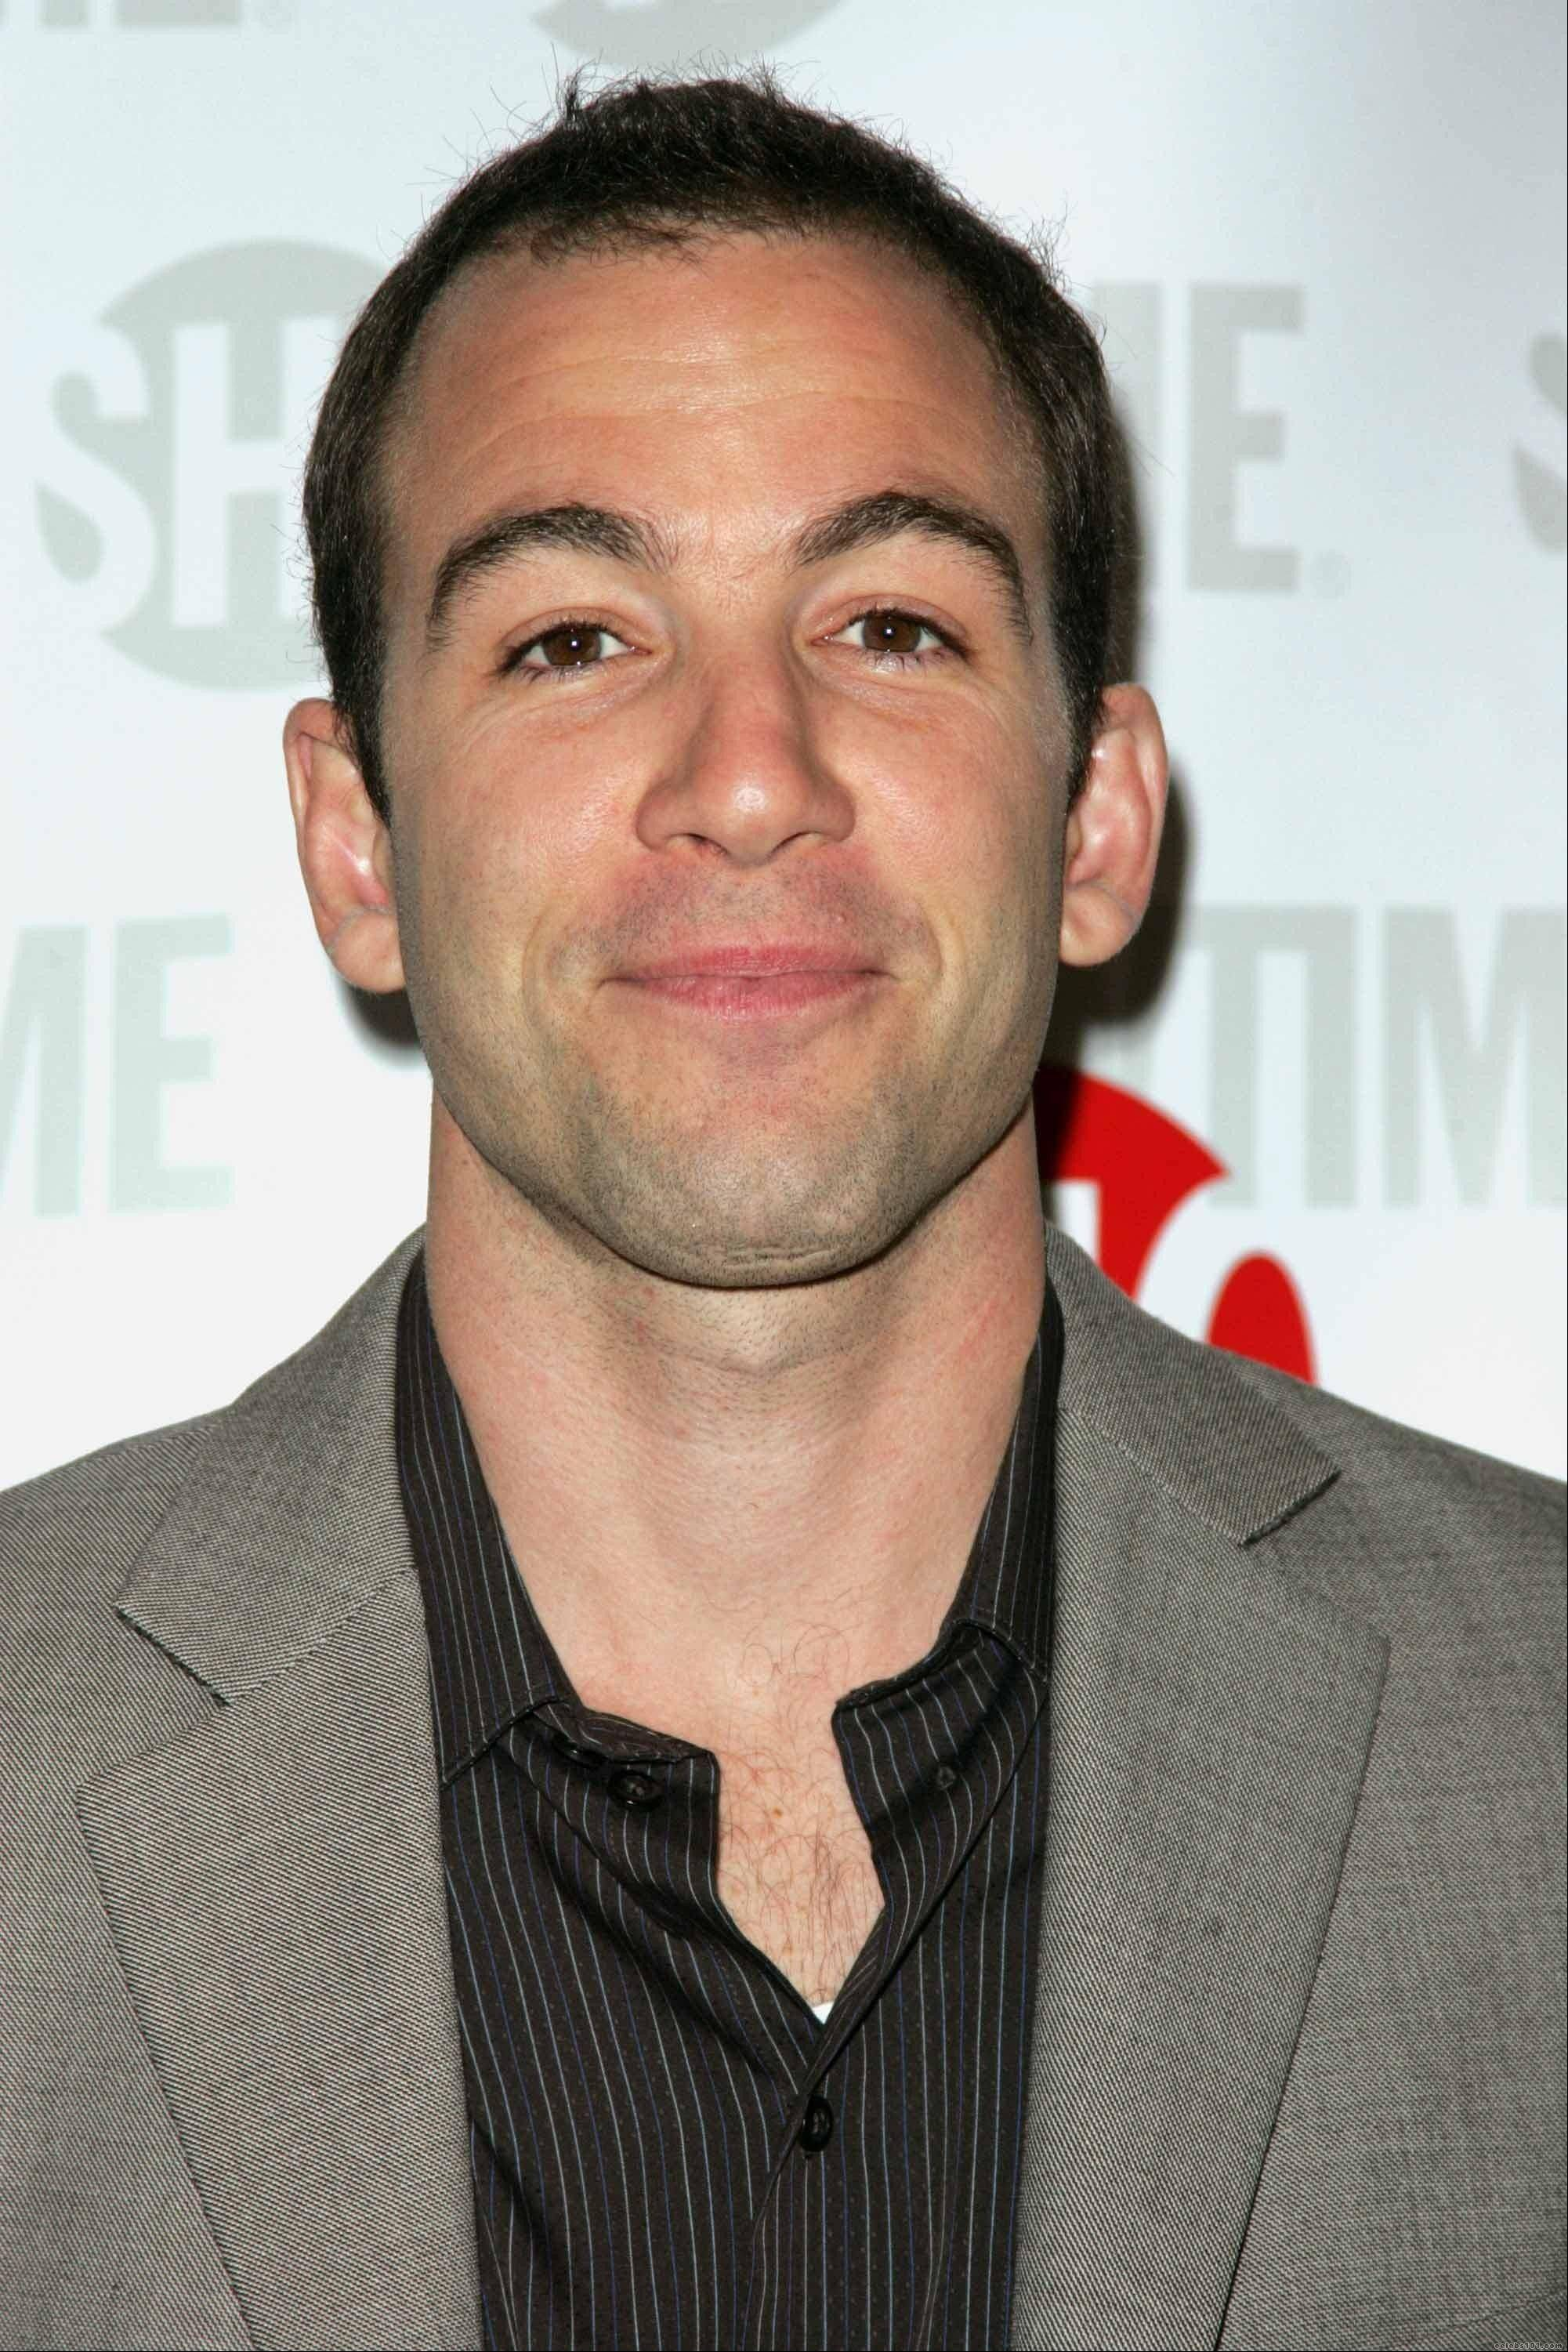 Comedian Bryan Callen appears at the Improv Comedy Showcase in Schaumburg.